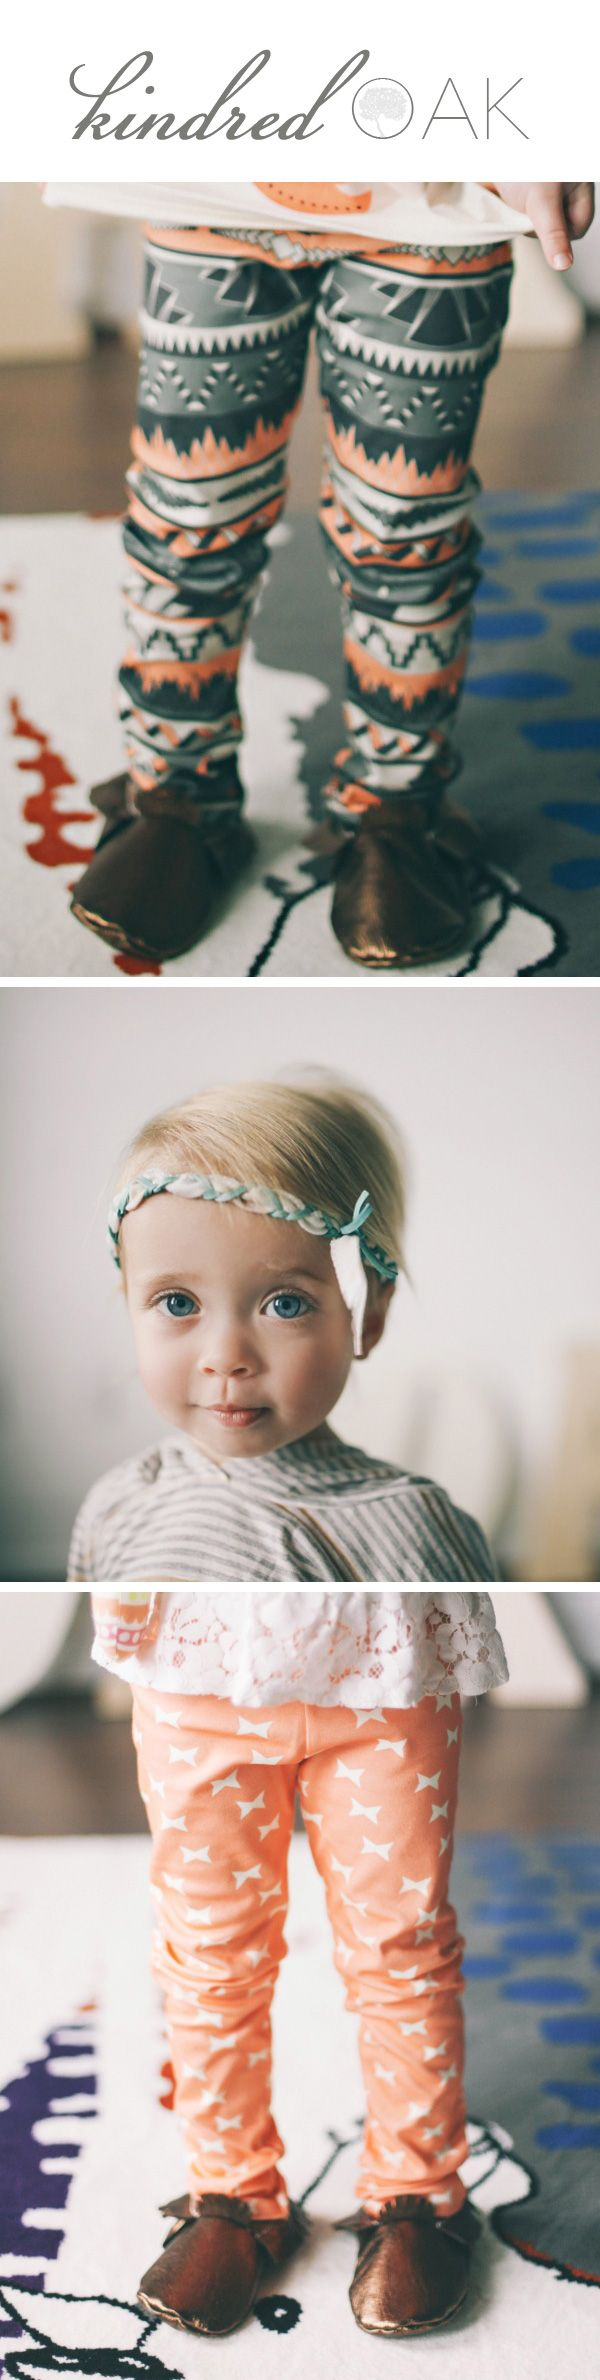 Cute baby clothes baby clothing etc pinterest babies clothes